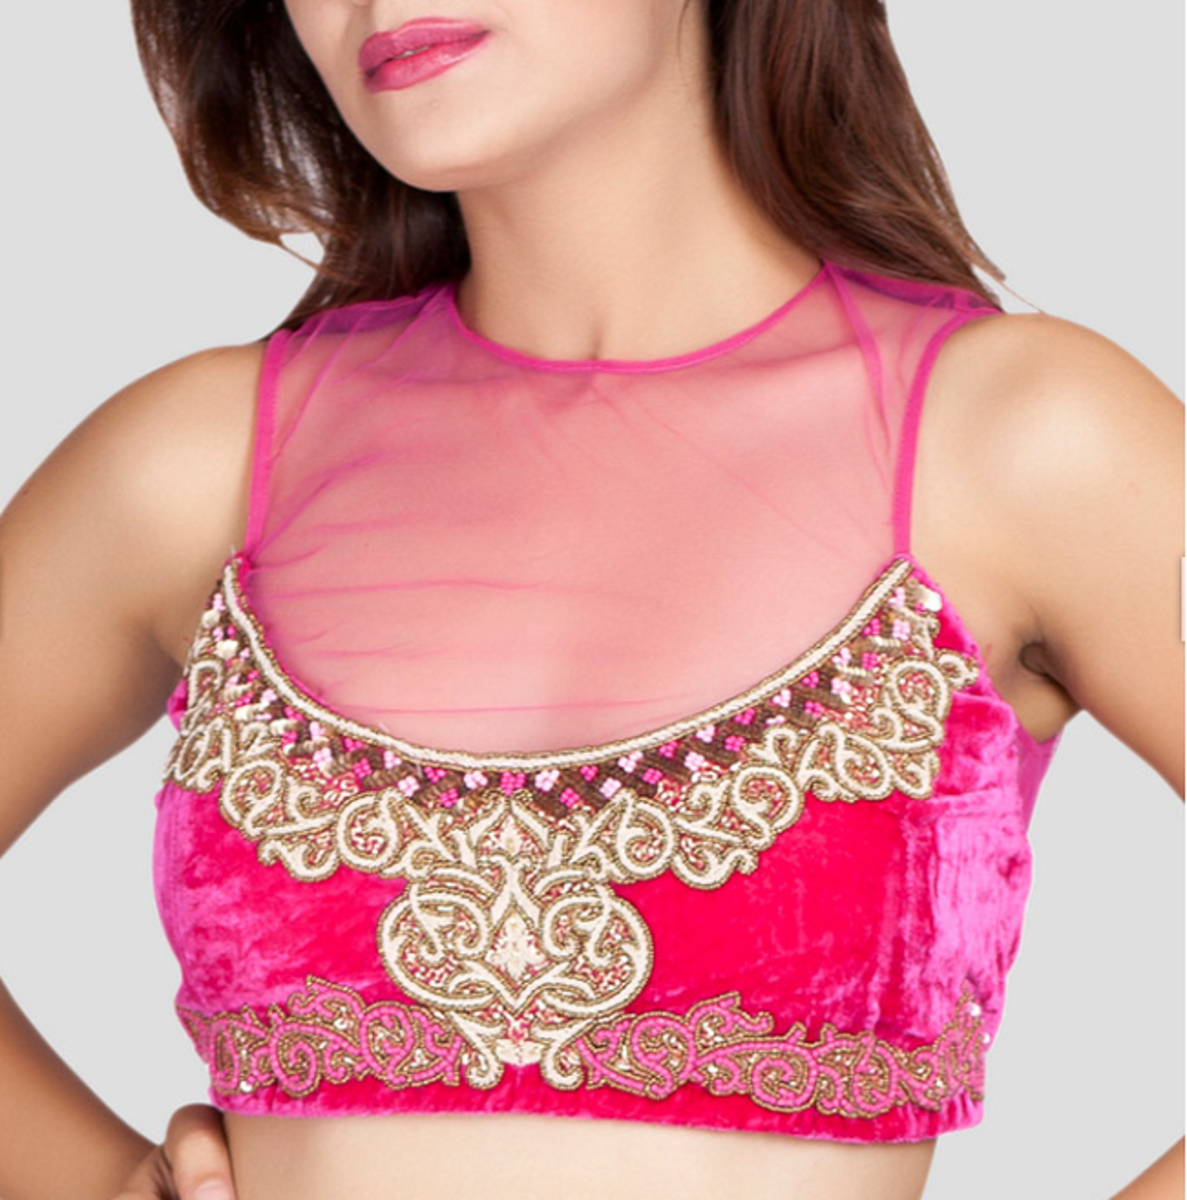 latest trend in saree blouse design is half body lining and half body transparent.